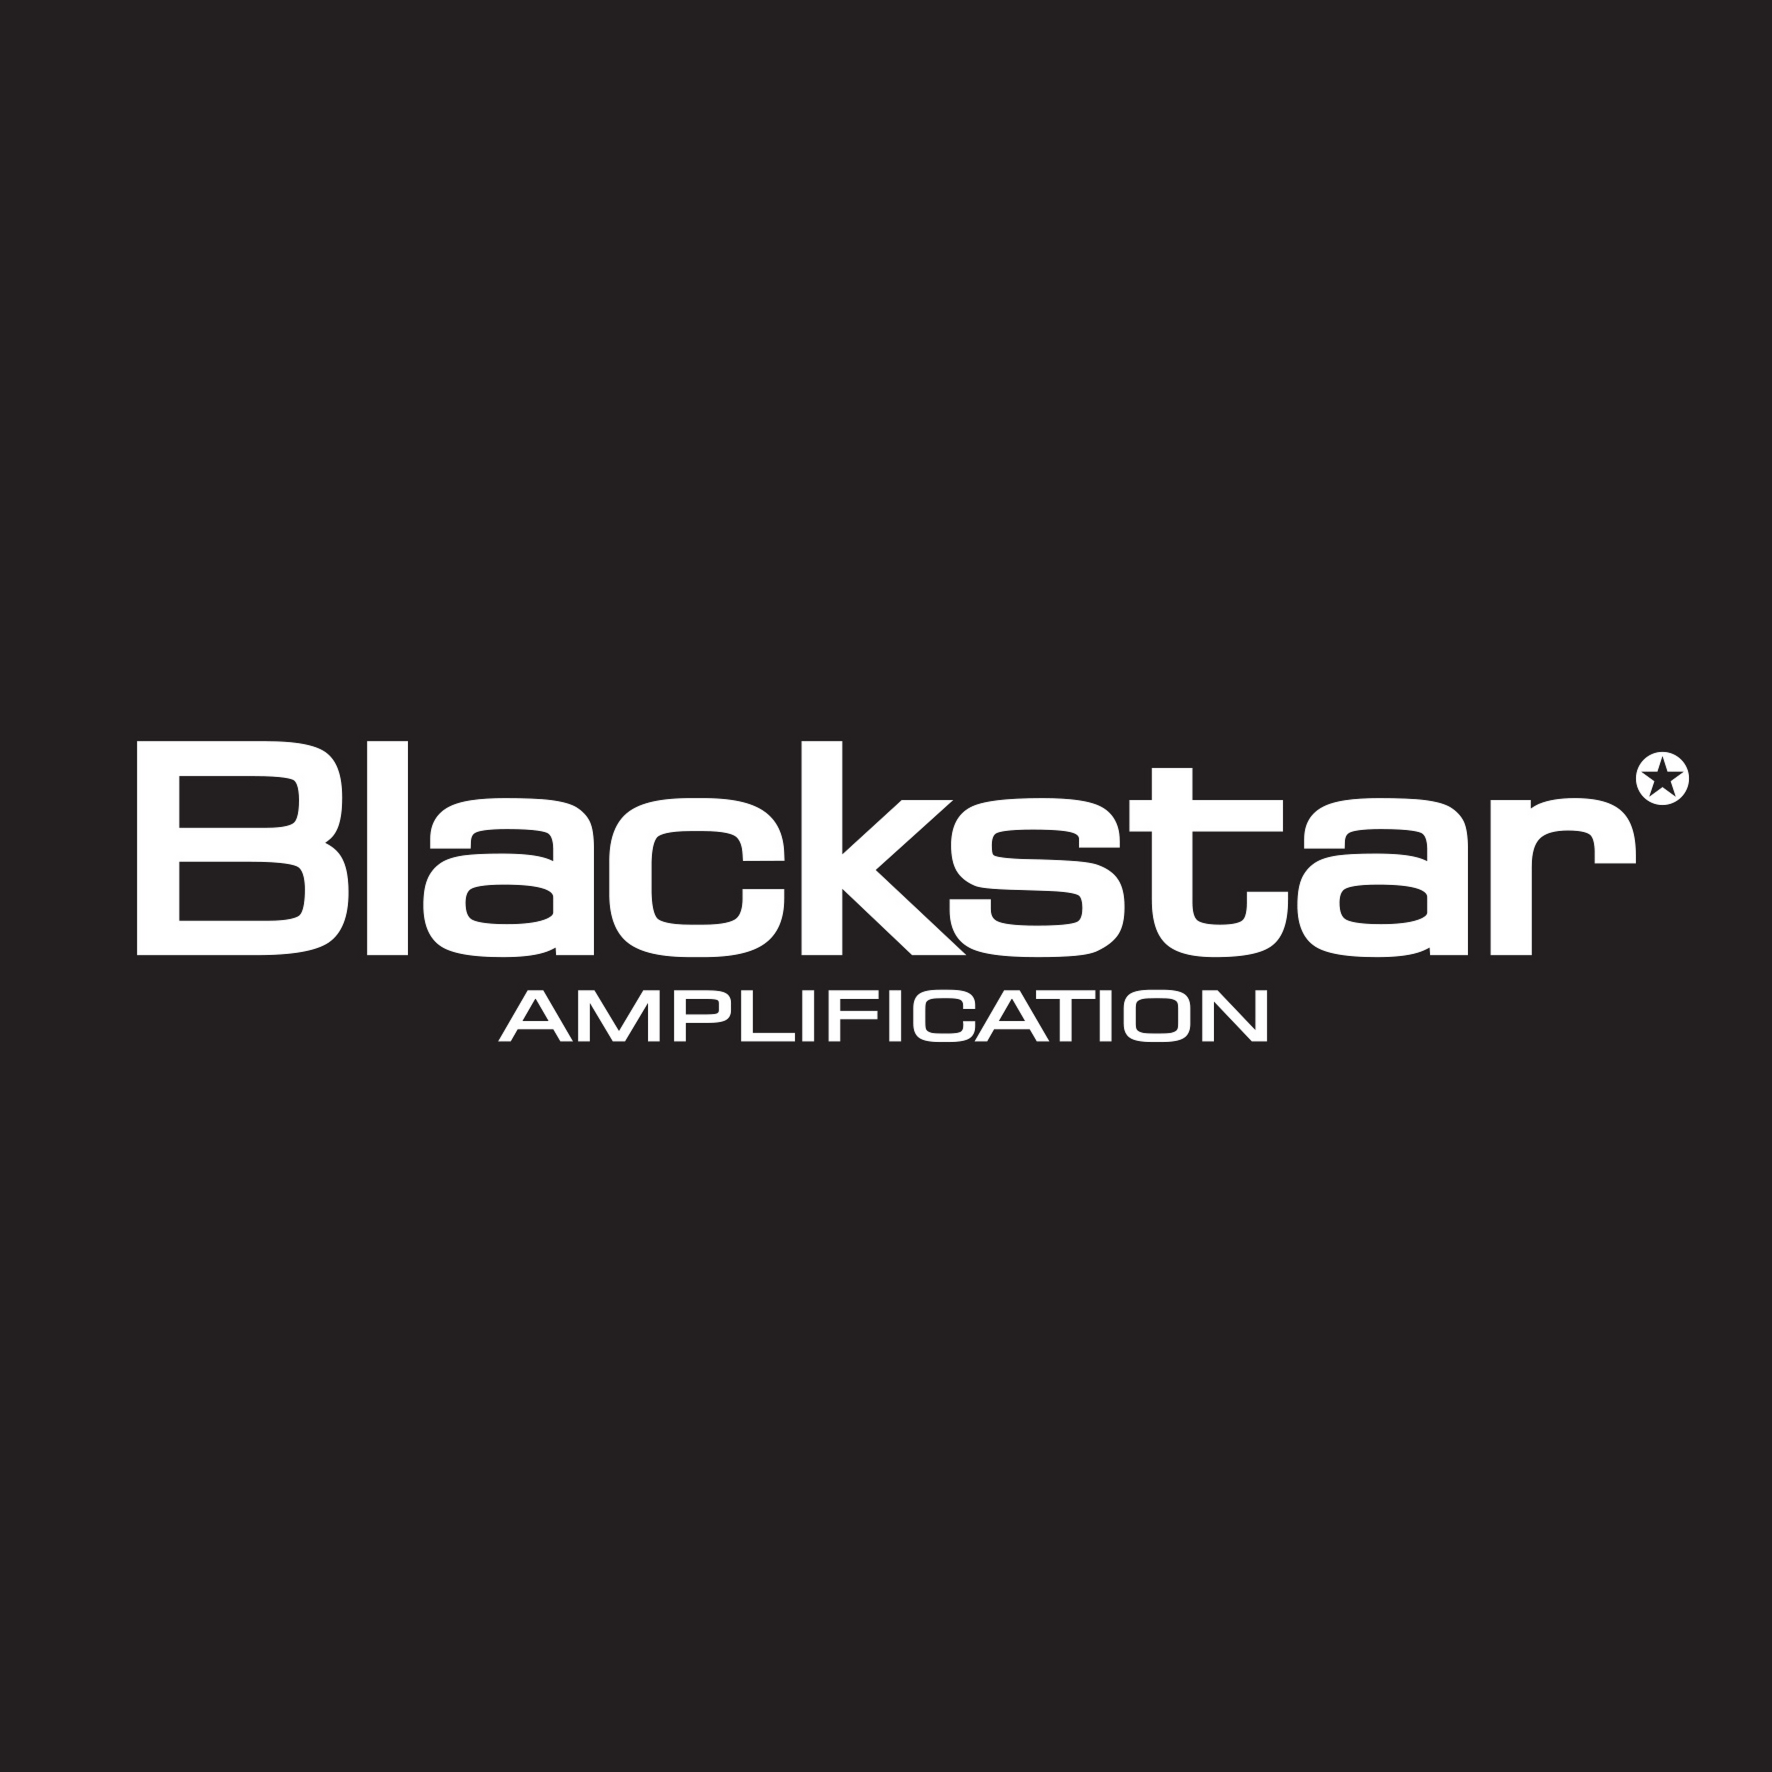 blackstar-amplification